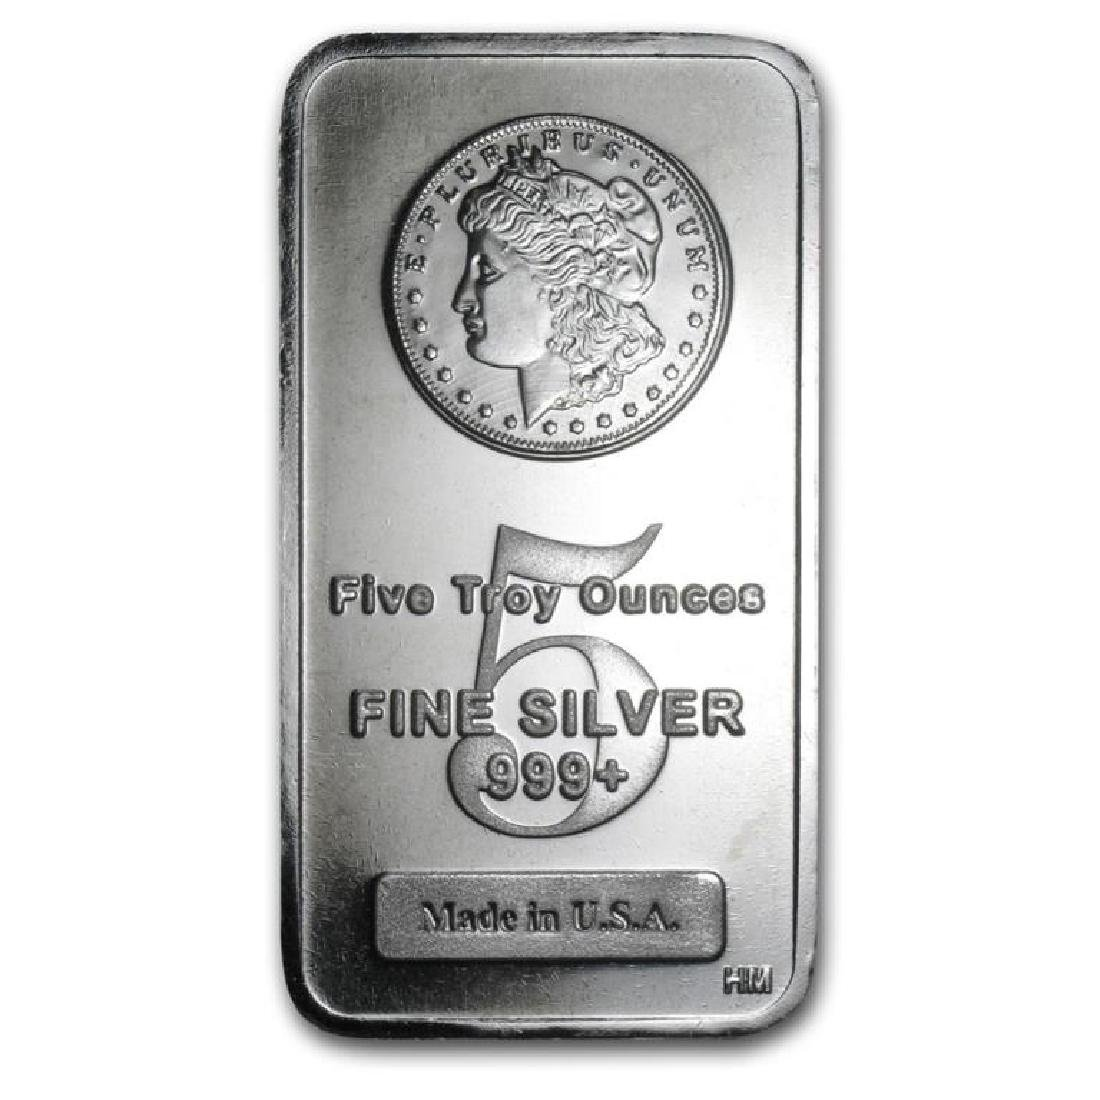 Pure Silver 5 oz Bar Morgan Design